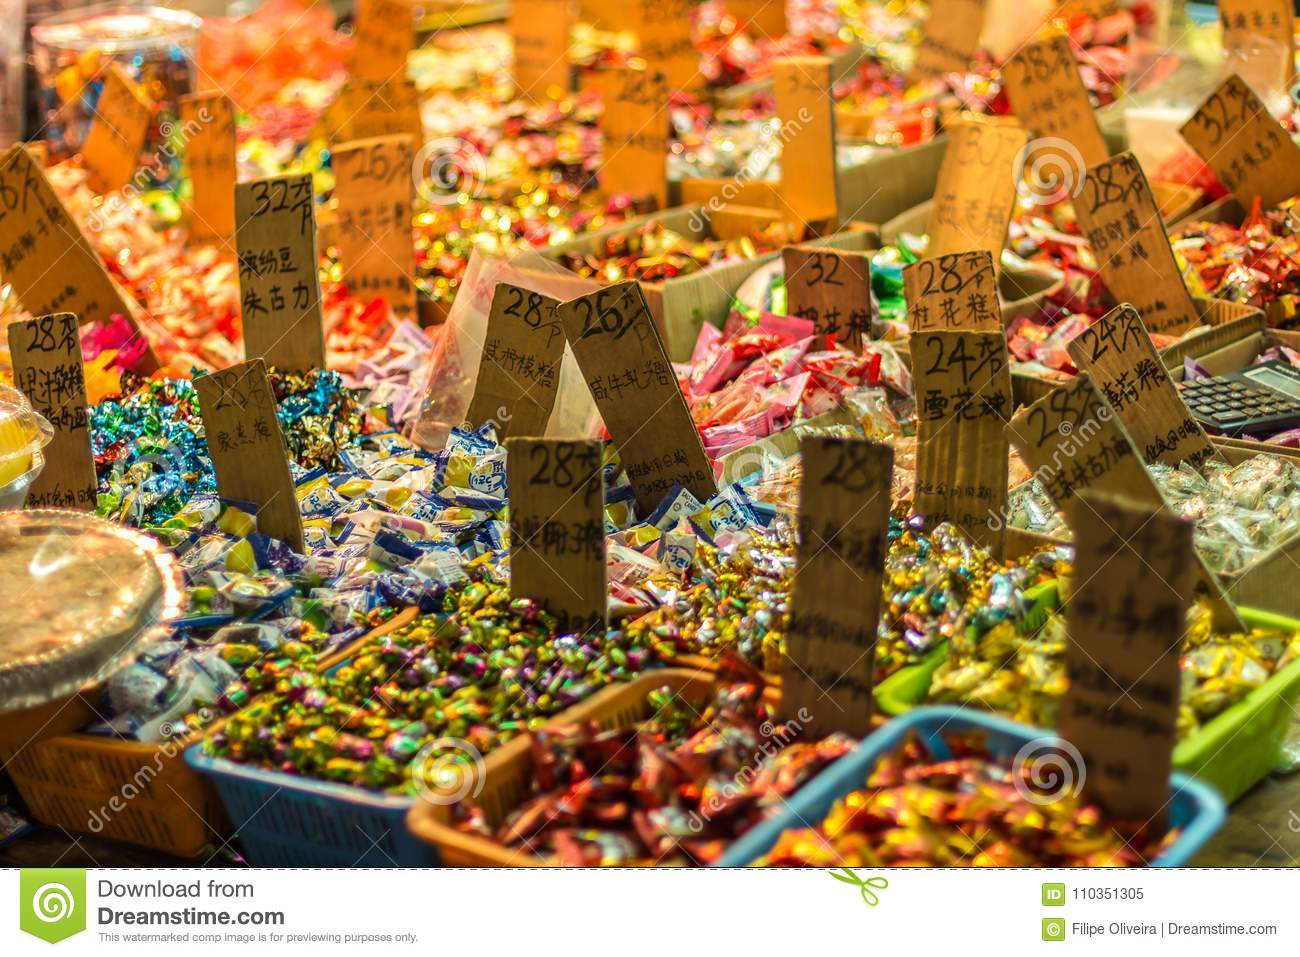 Chinese New Year Candies On Sale Stock Image - Image of year ...